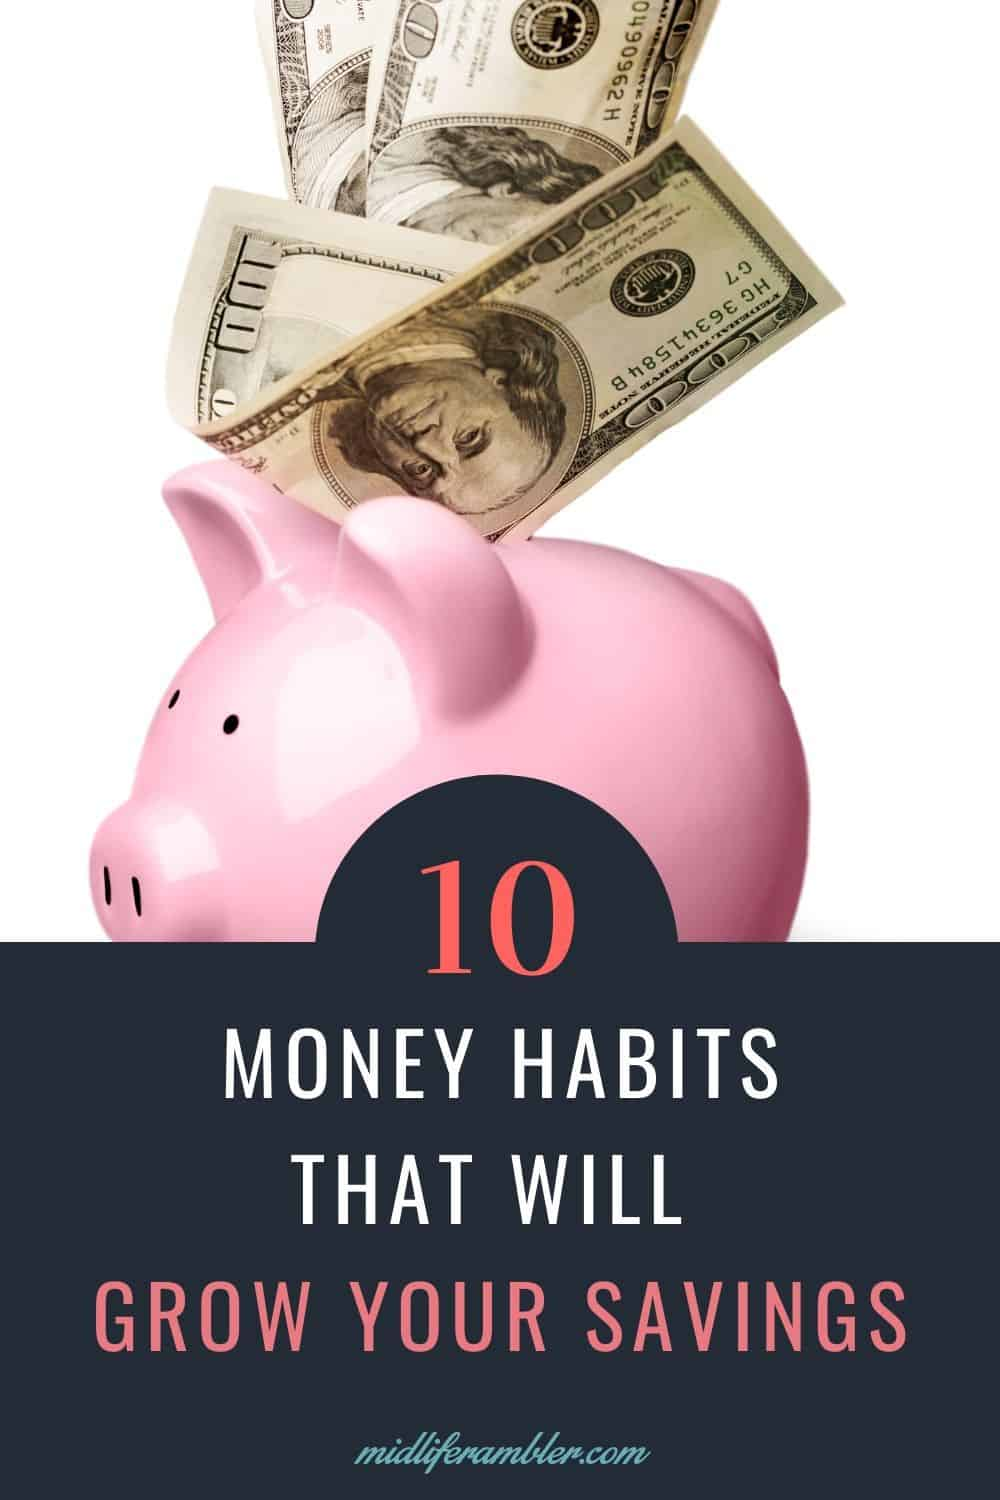 10 Money Habits You Can Adopt to Spend More Wisely and Save Money Painlessly 10